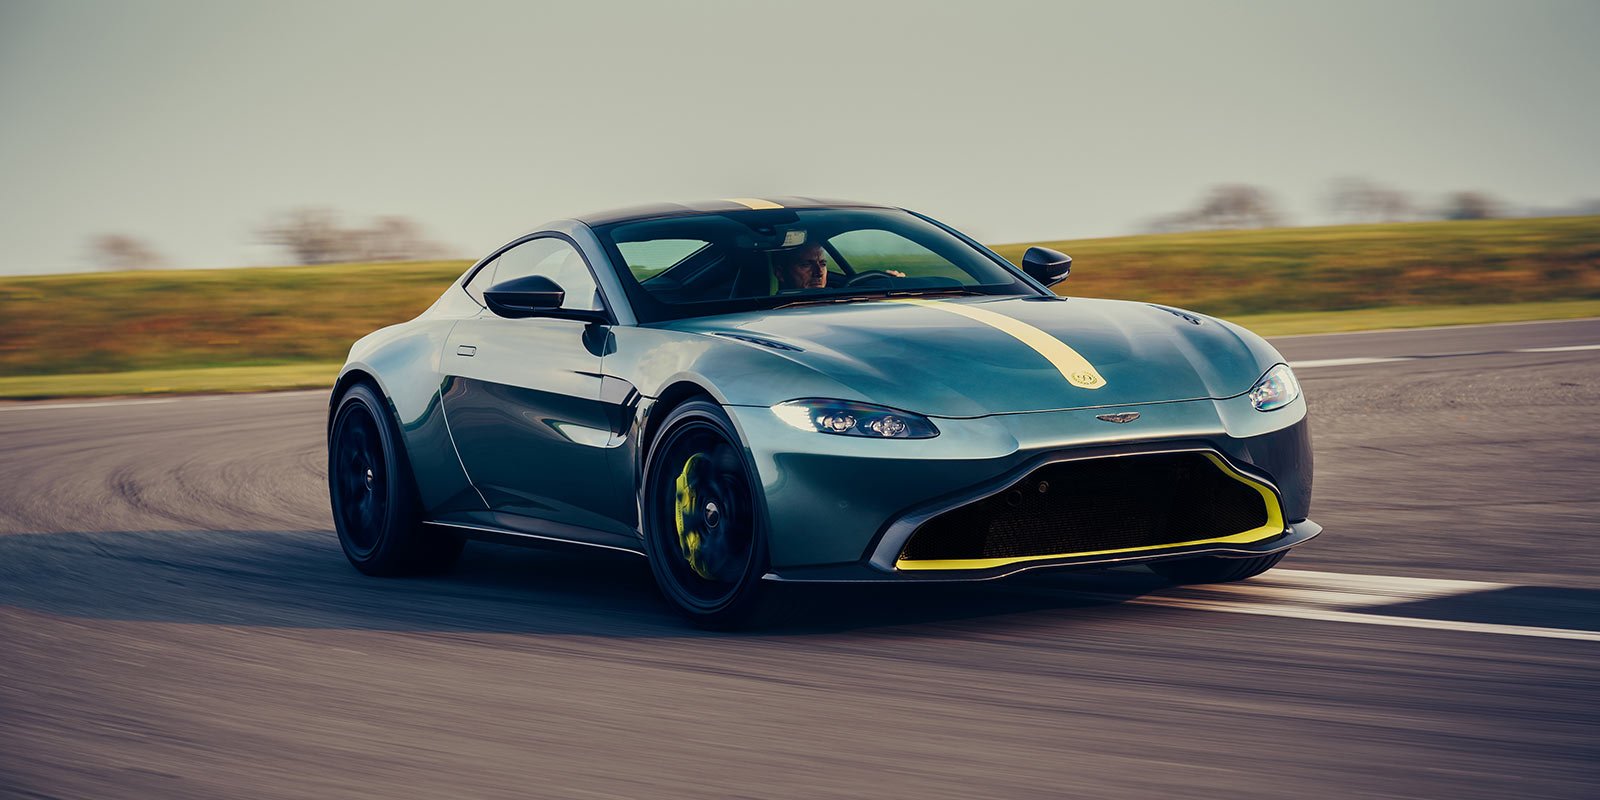 Aston Martin Vantage AMR - Limited Edition - Pure, Engaging Performance image 8